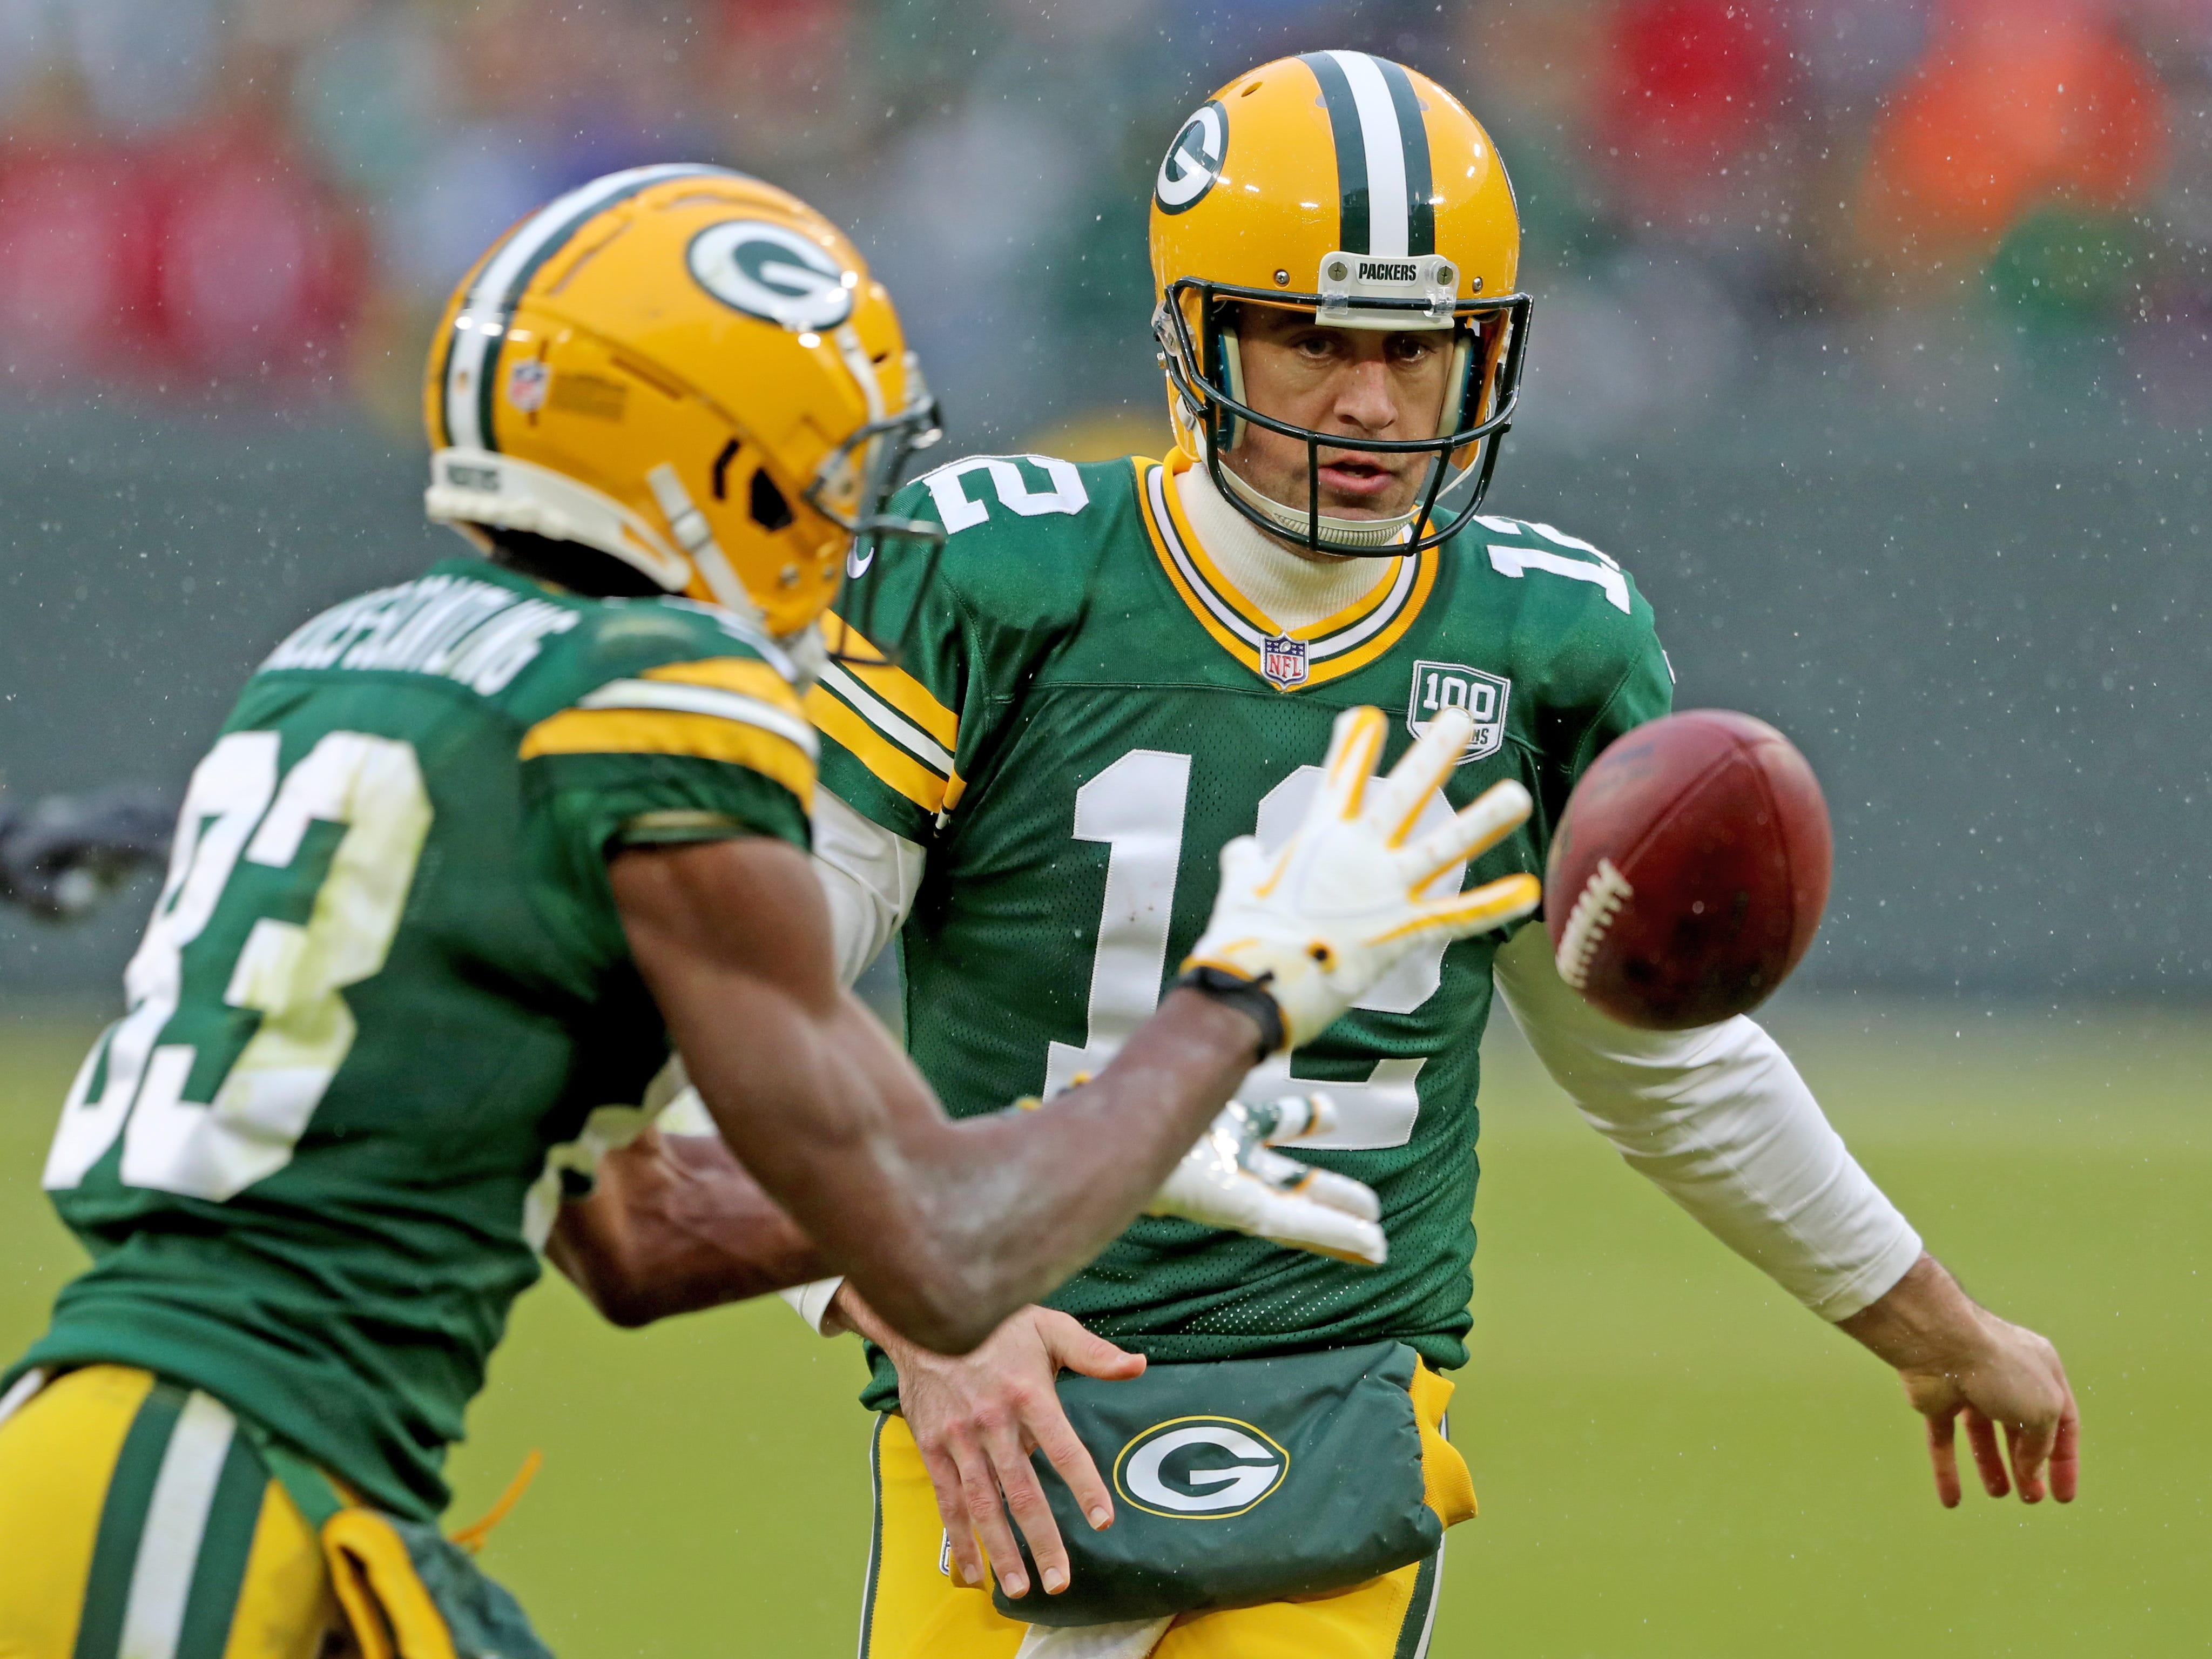 Green Bay Packers wide receiver Marquez Valdes-Scantling (83) takes the pitch from quarterback Aaron Rodgers (12) on a reverse against the Arizona Cardinals Sunday, December 2, 2018 at Lambeau Field in Green Bay, Wis. Jim Matthews/USA TODAY NETWORK-Wis